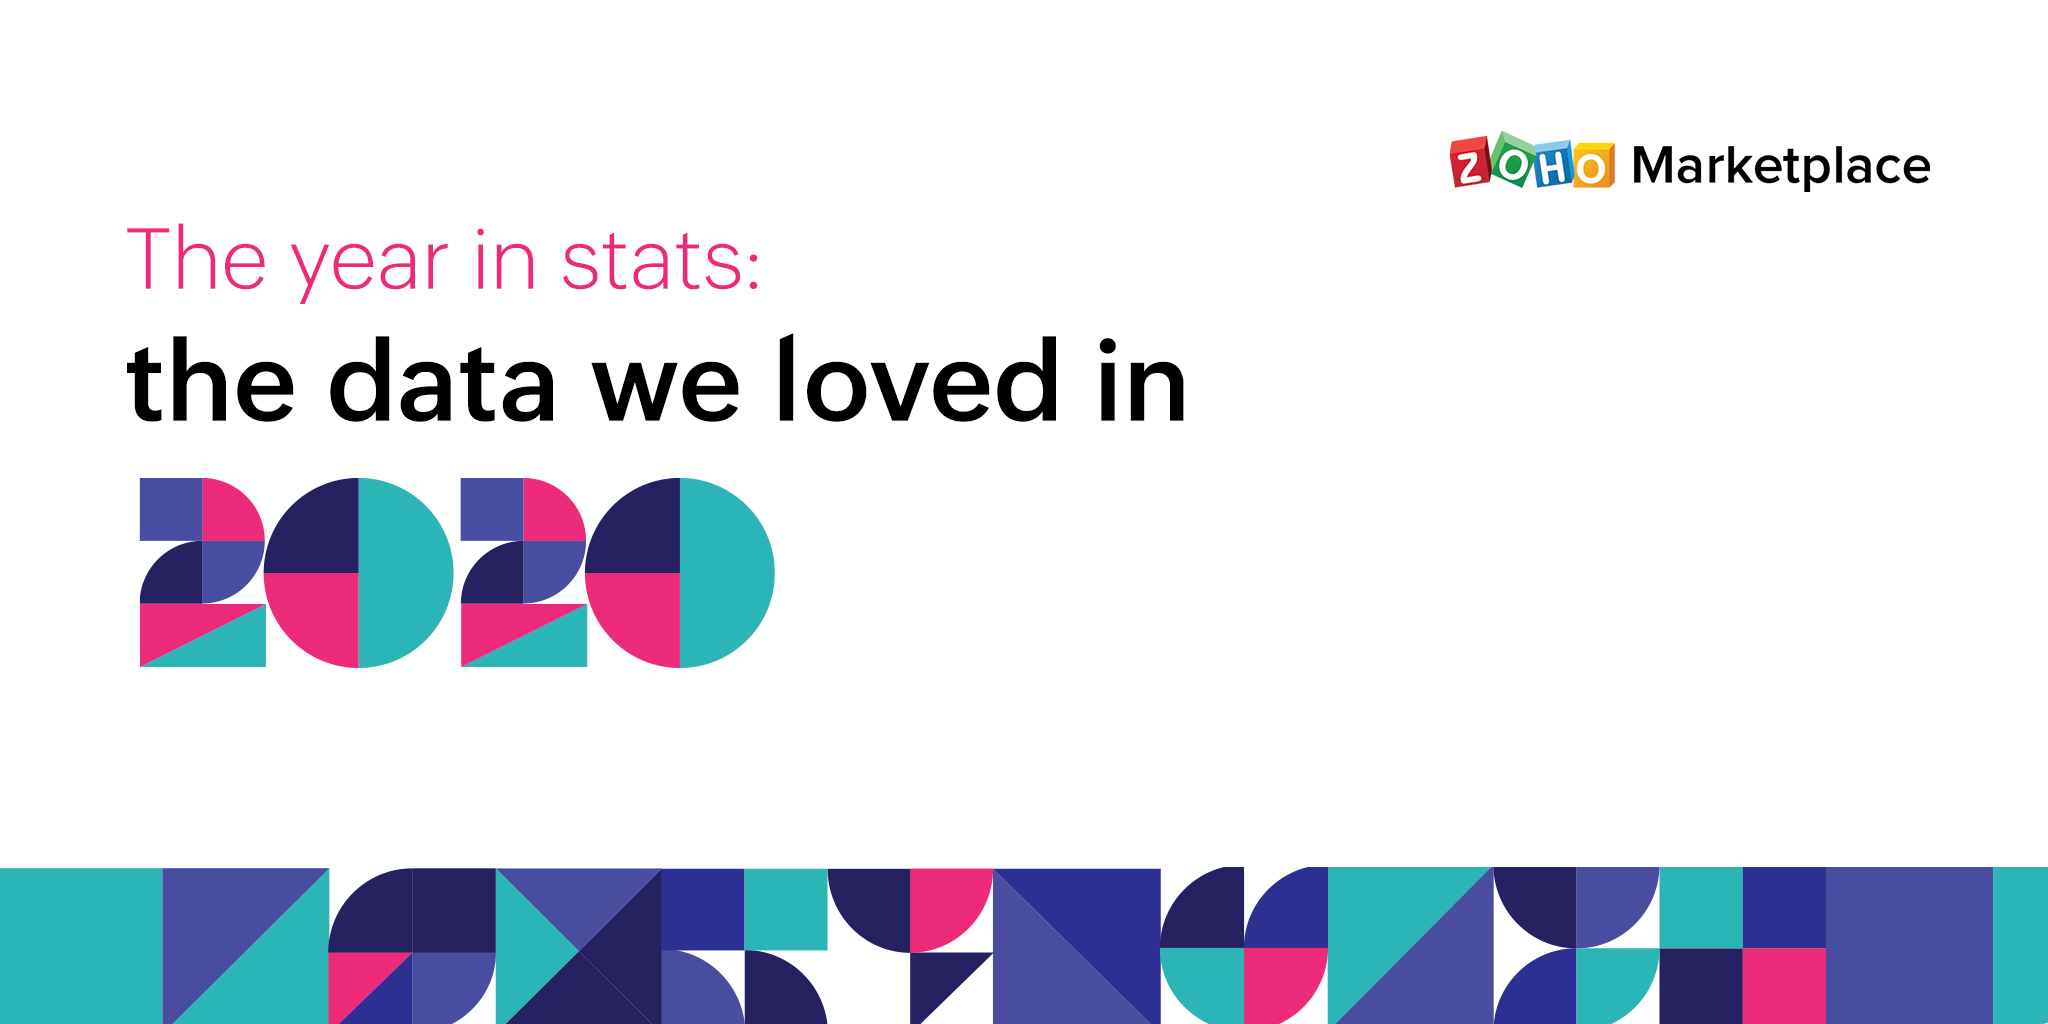 The year in stats: the data we loved in 2020